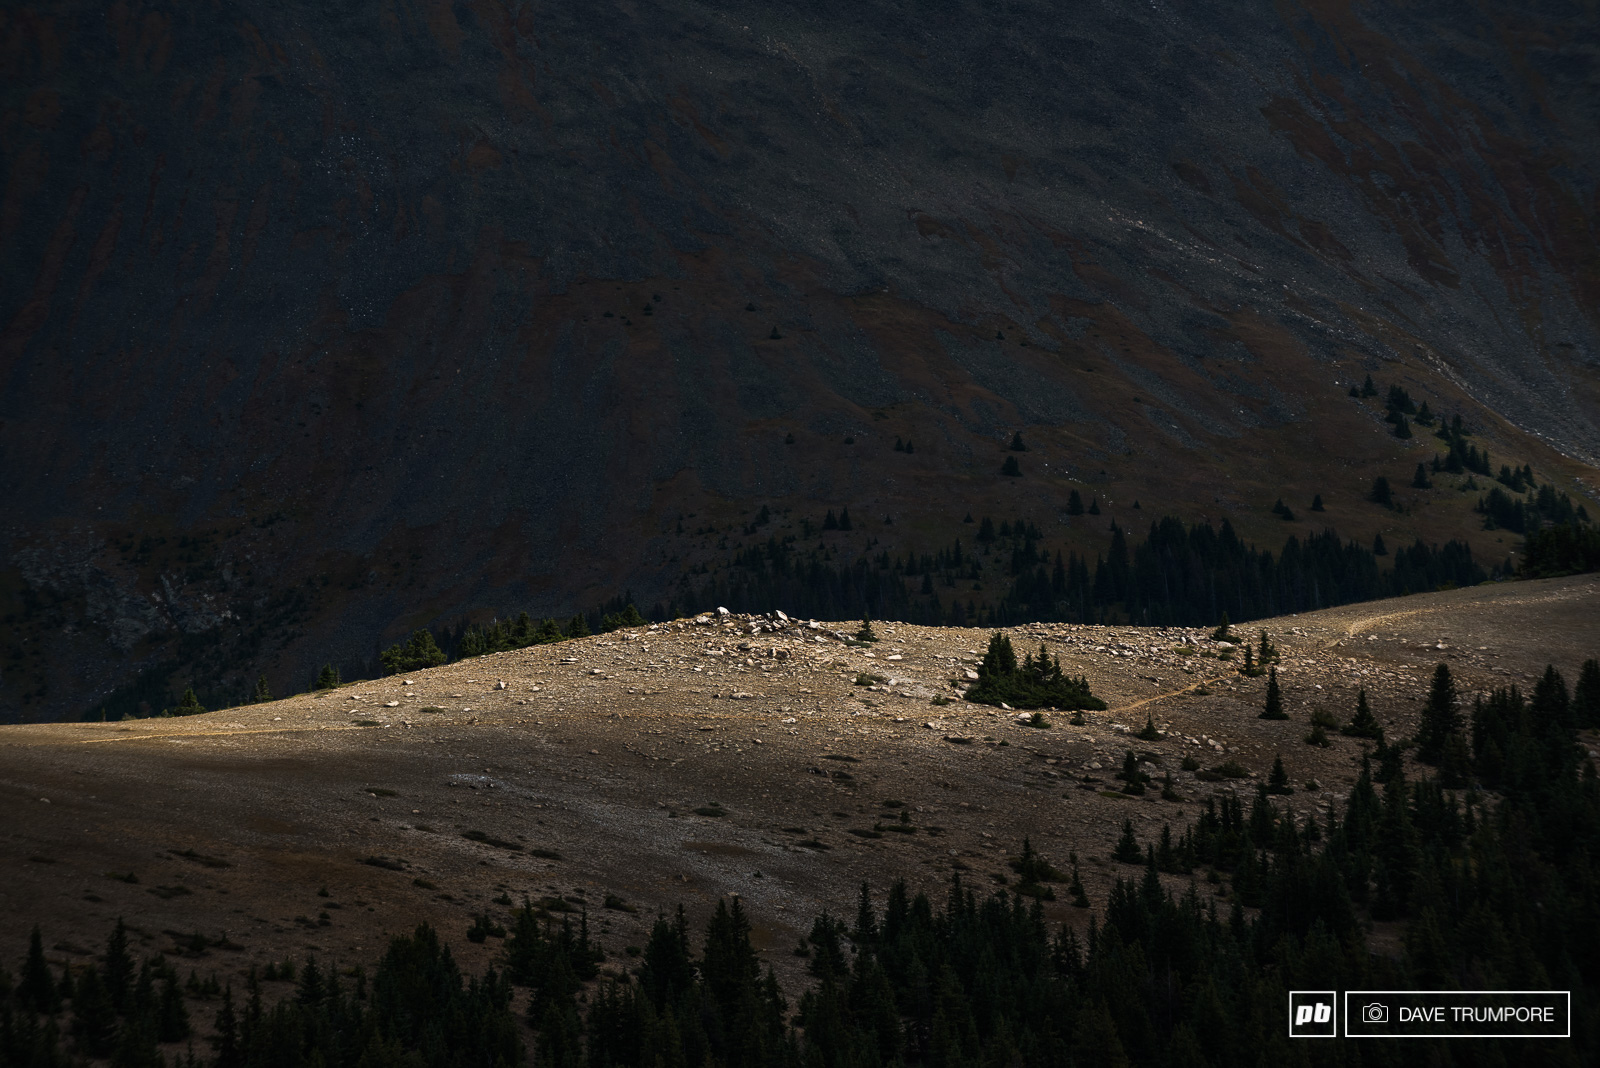 Chasing that elusive light over the Continental Divide.